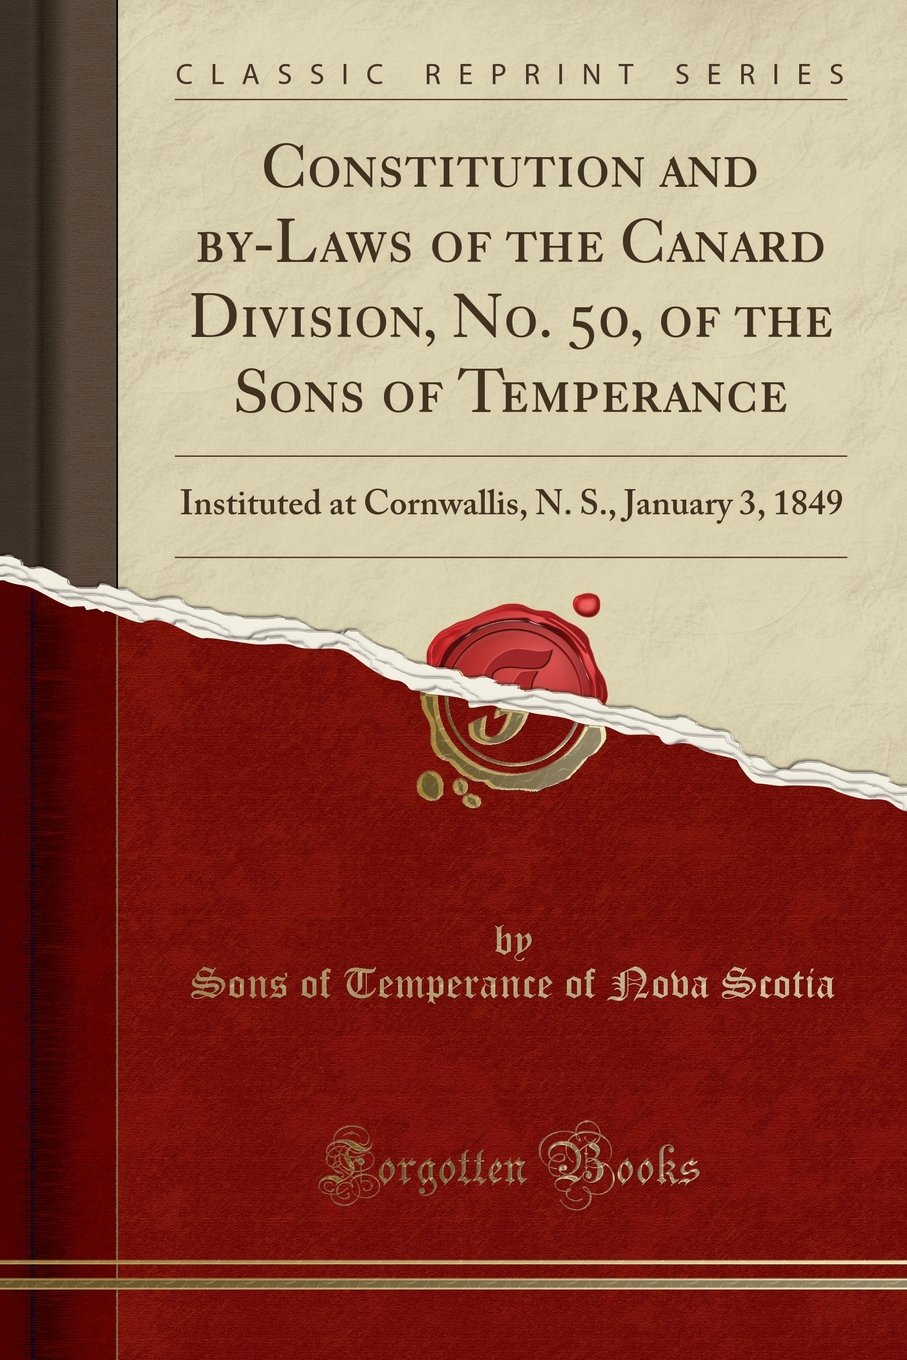 Download Constitution and by-Laws of the Canard Division, No. 50, of the Sons of Temperance: Instituted at Cornwallis, N. S., January 3, 1849 (Classic Reprint) ebook